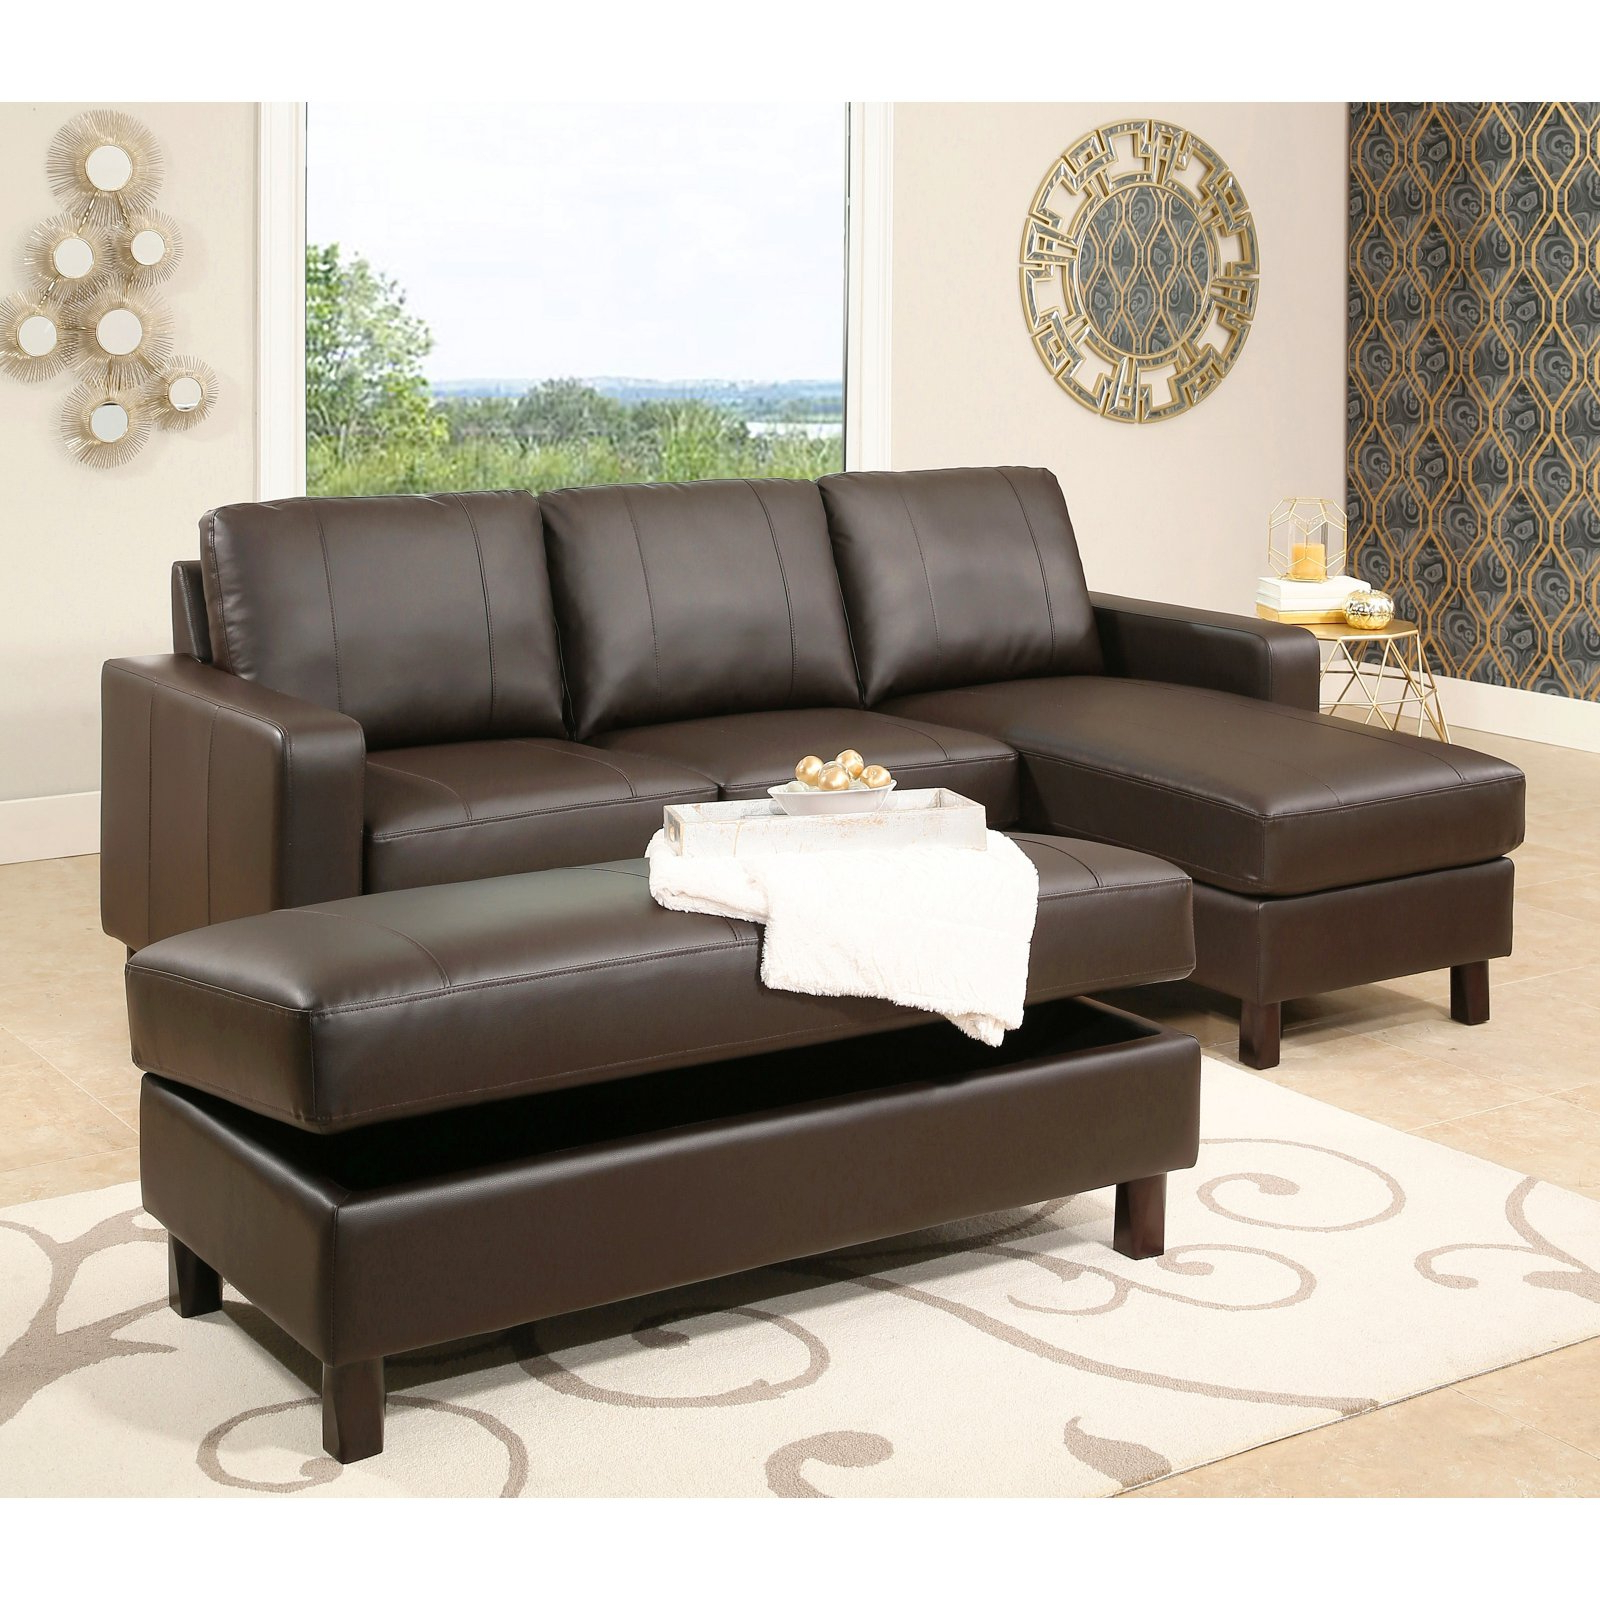 Most Popular Abbyson Cedar Leather Reversible Sectional Sofa With Inside Copenhagen Reversible Small Space Sectional Sofas With Storage (View 10 of 20)